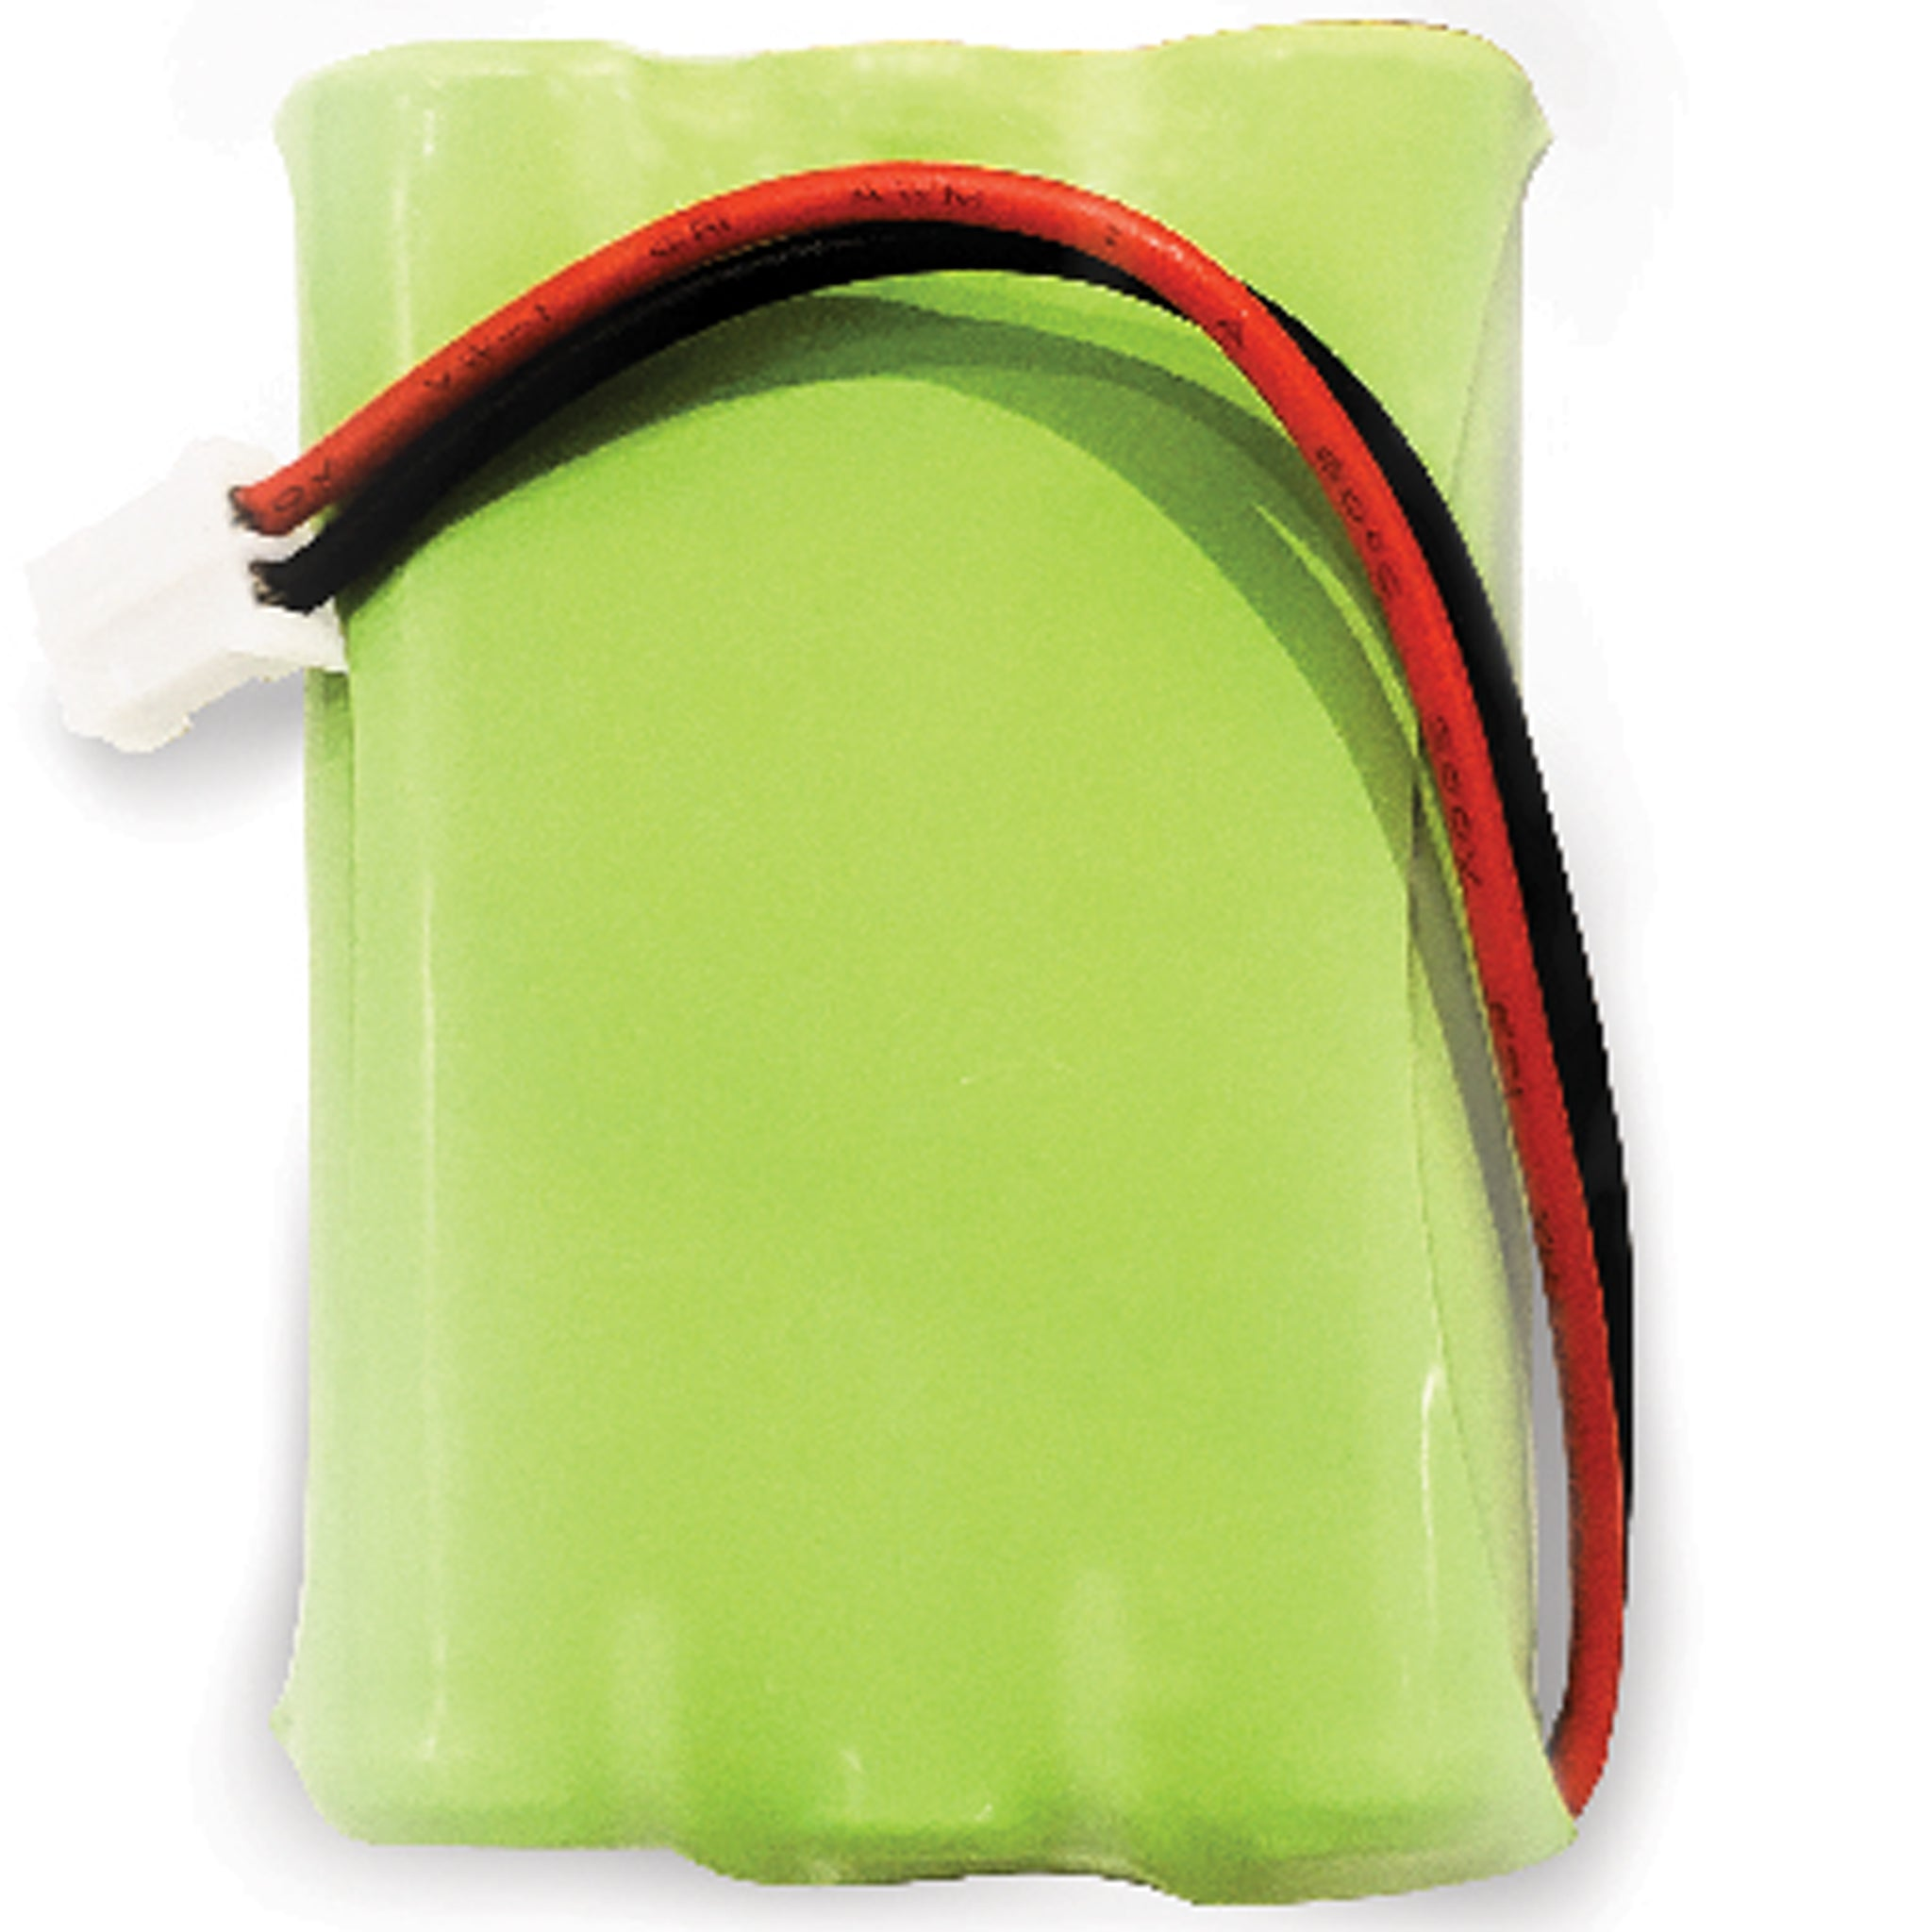 Baby Blendy Replacement Battery Pack